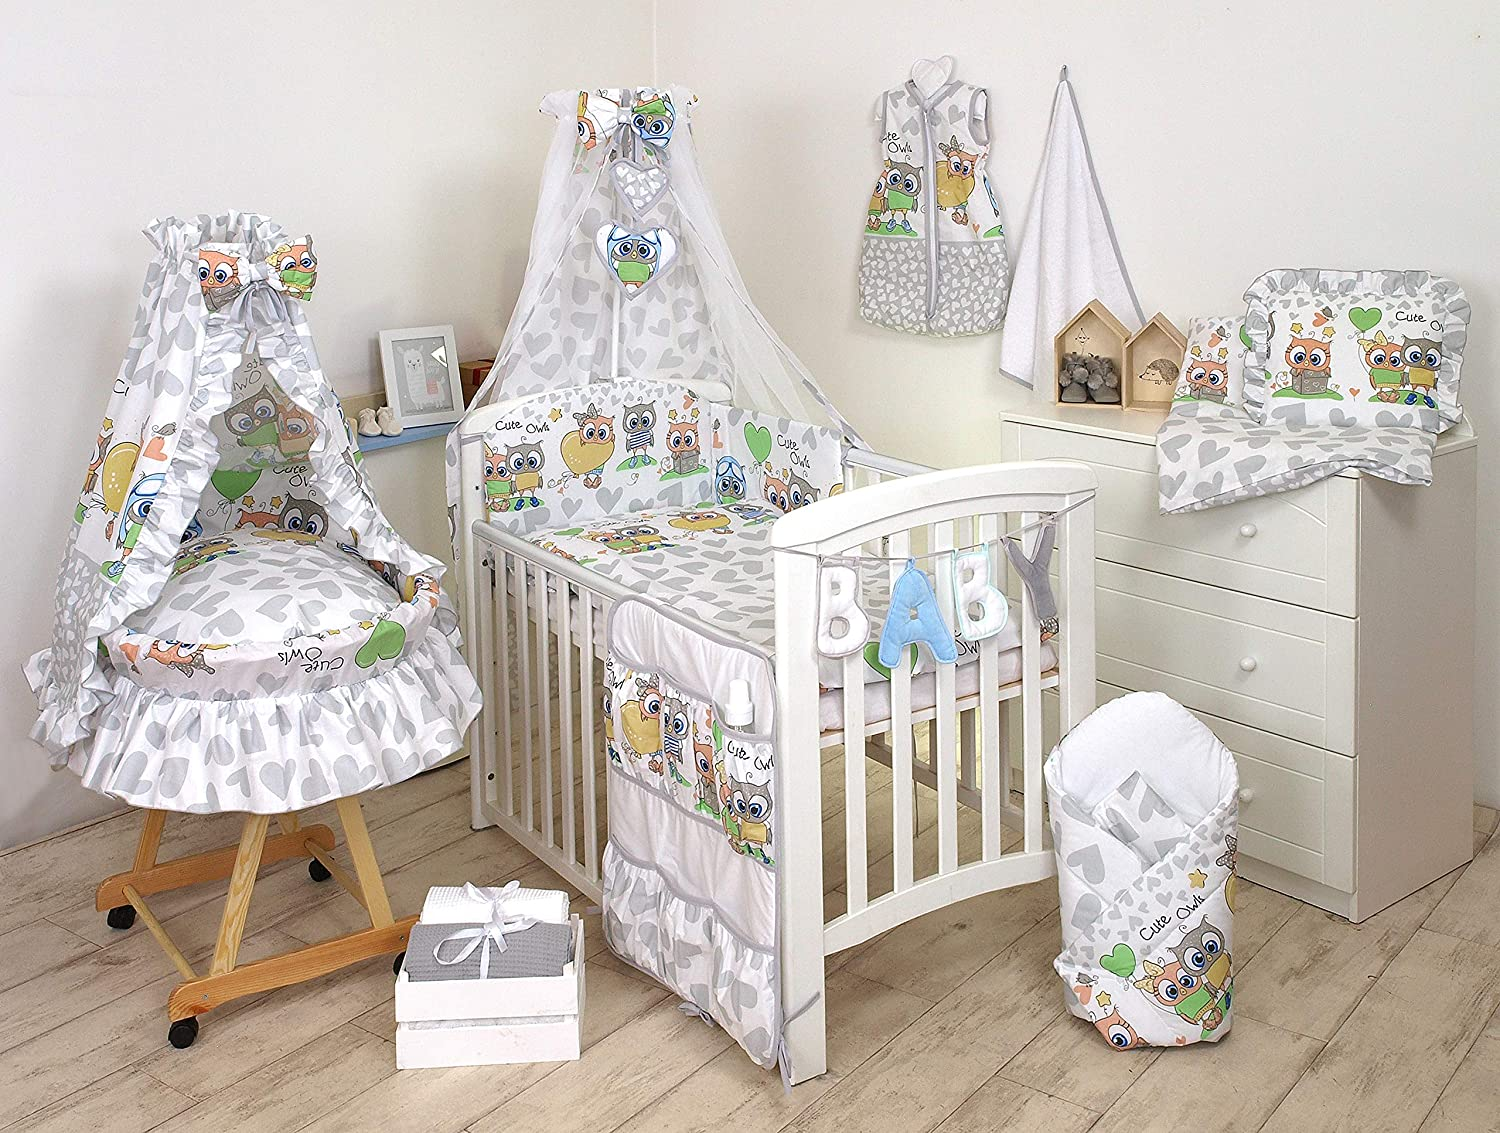 100/% Cotton 3 PCS PRO COSMO Baby Bedding Set to FIT COT /& COT Bed Blue Teddy Bear to fit cot Bed 140x70cm Mattress Size, 8